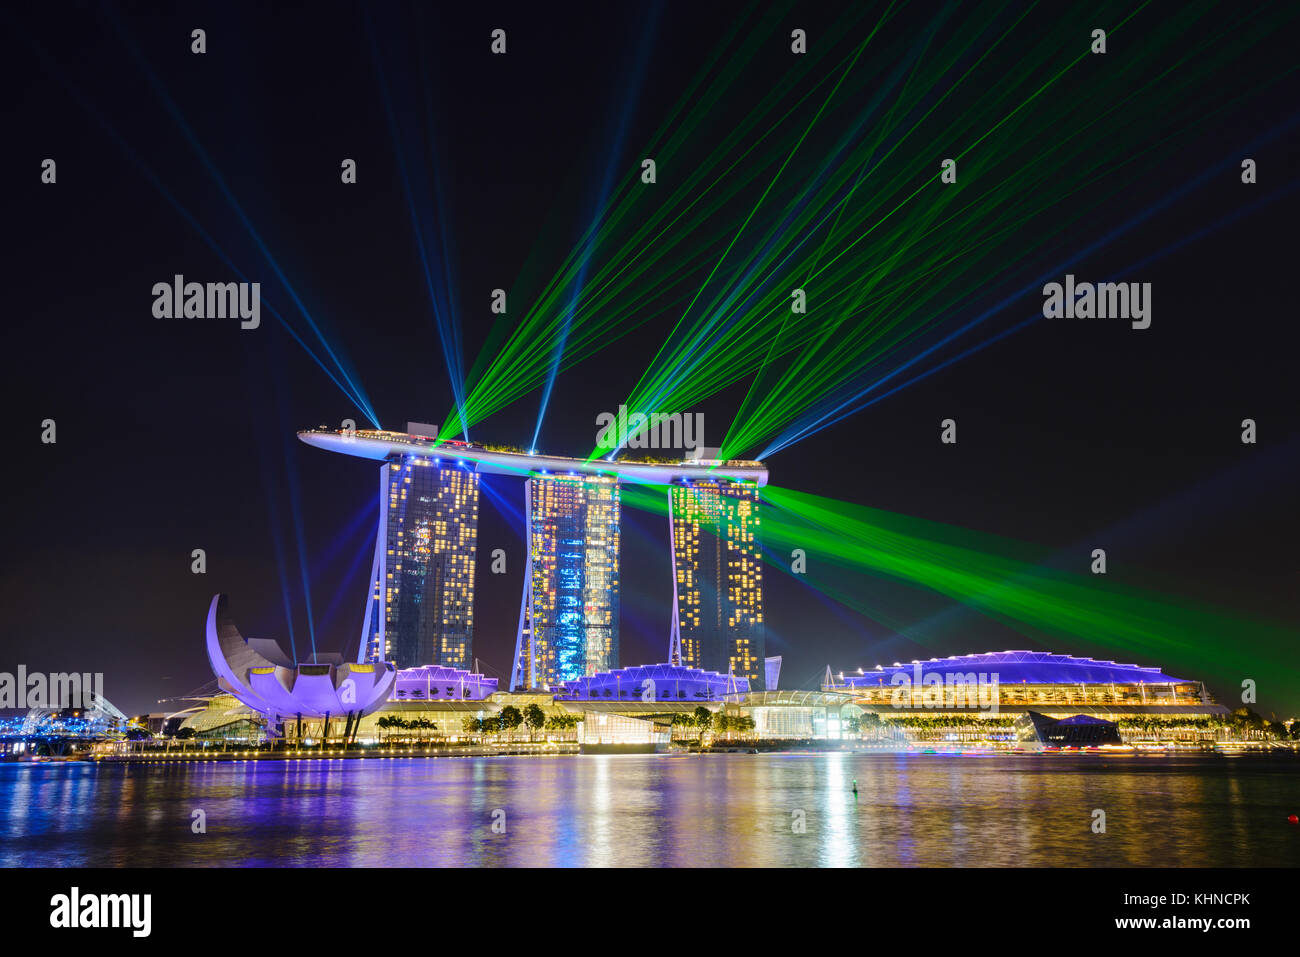 light laser and water fountain show at marina bay sands singapore